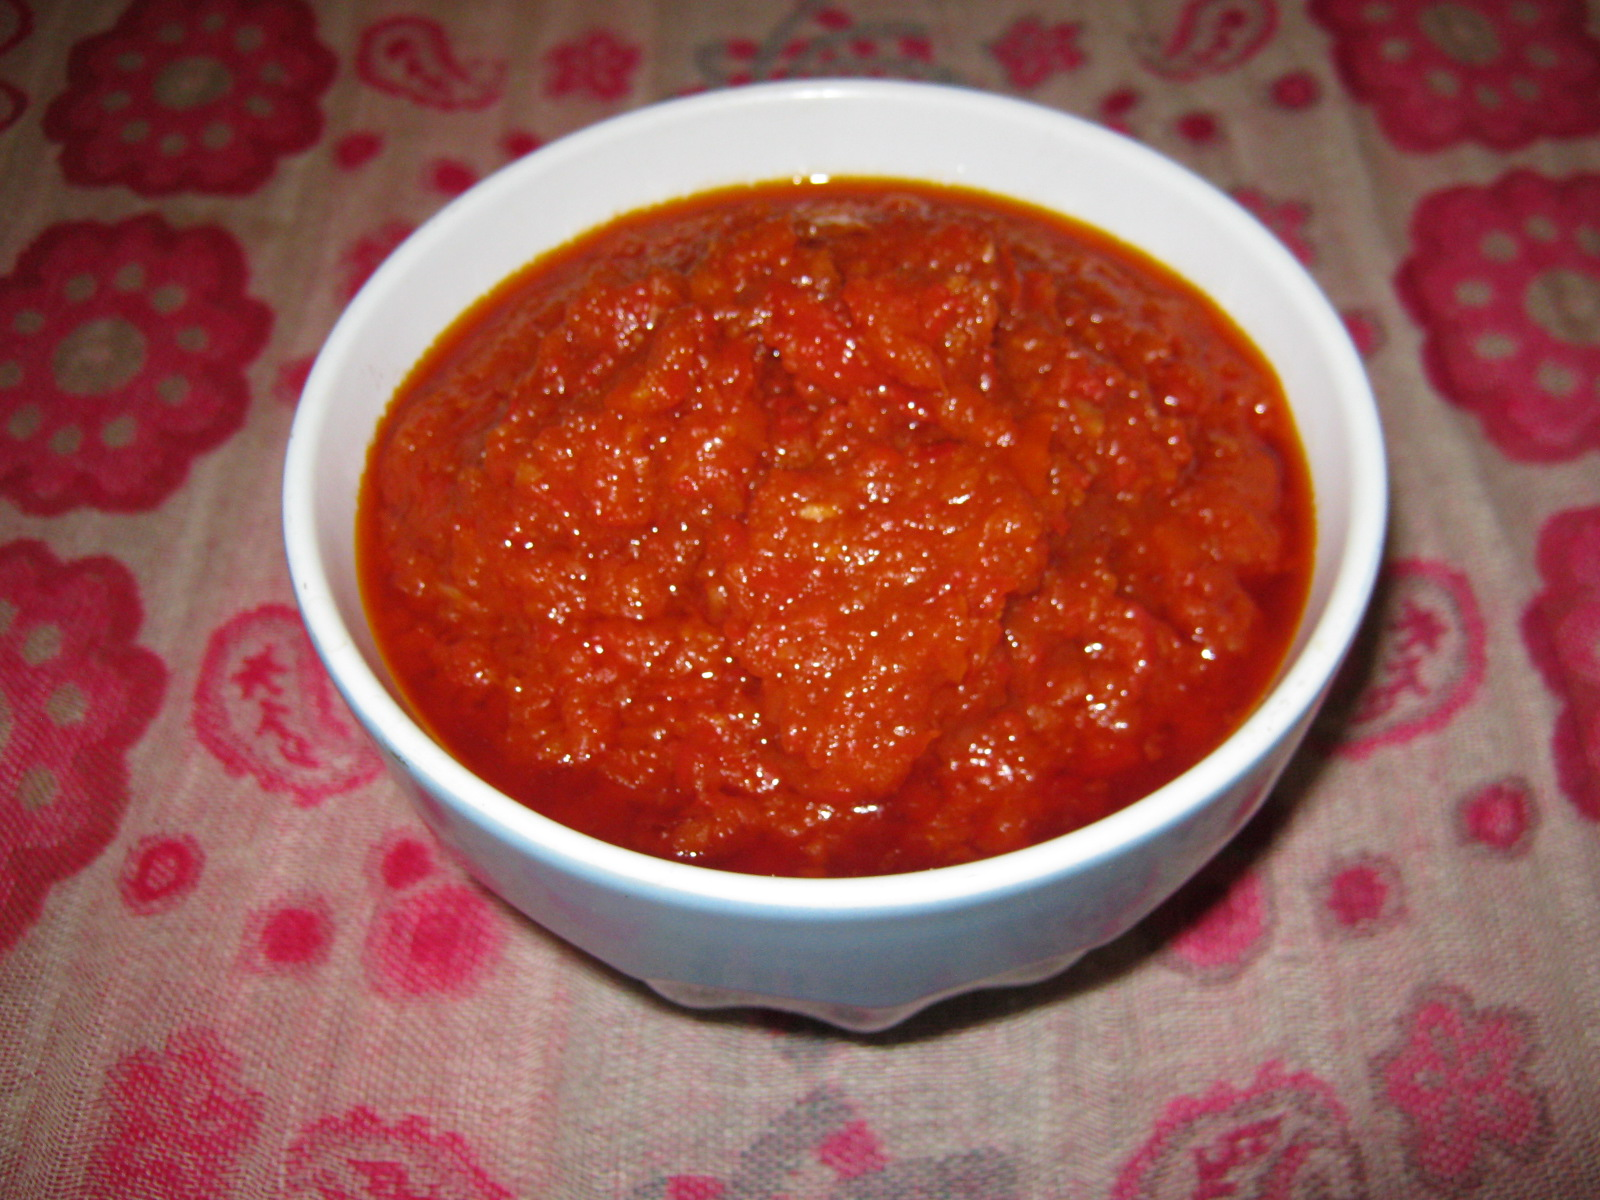 Hot Ata dindin - Nigerian Pepper Sauce